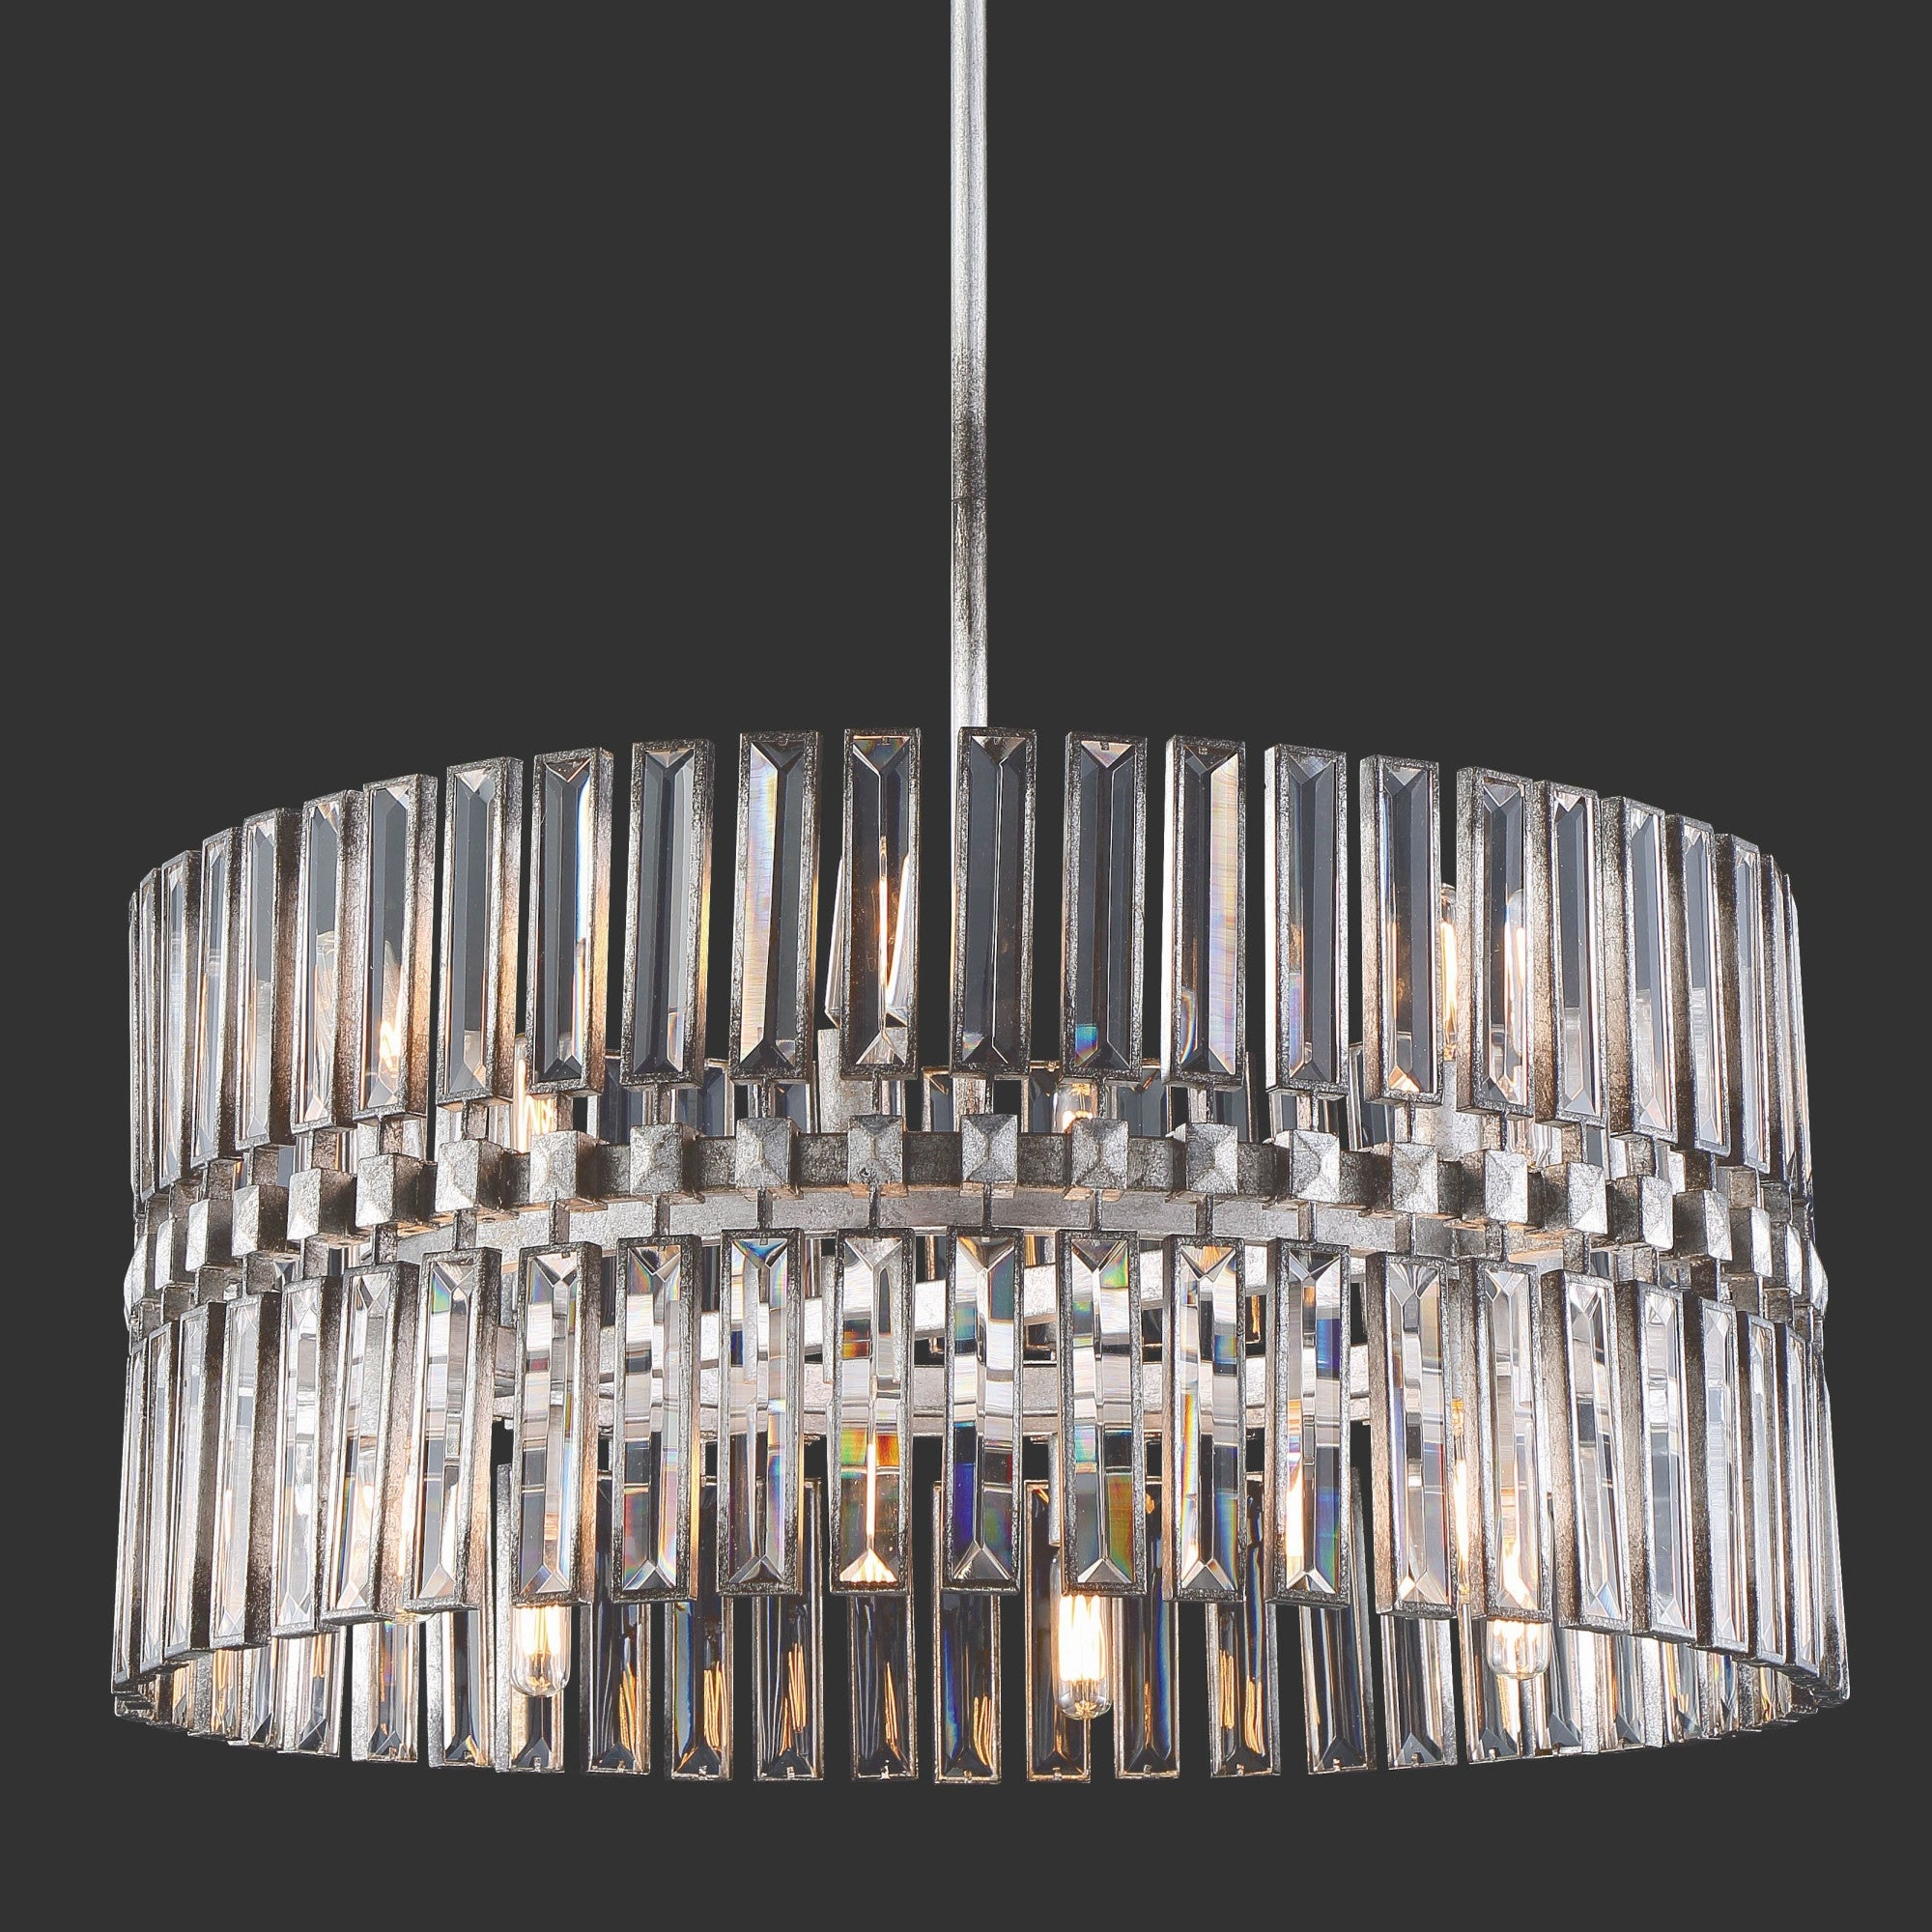 Metallic Metropolitan Ceiling Lights | Shop Our Best Pertaining To Aurore 4 Light Crystal Chandeliers (View 23 of 30)